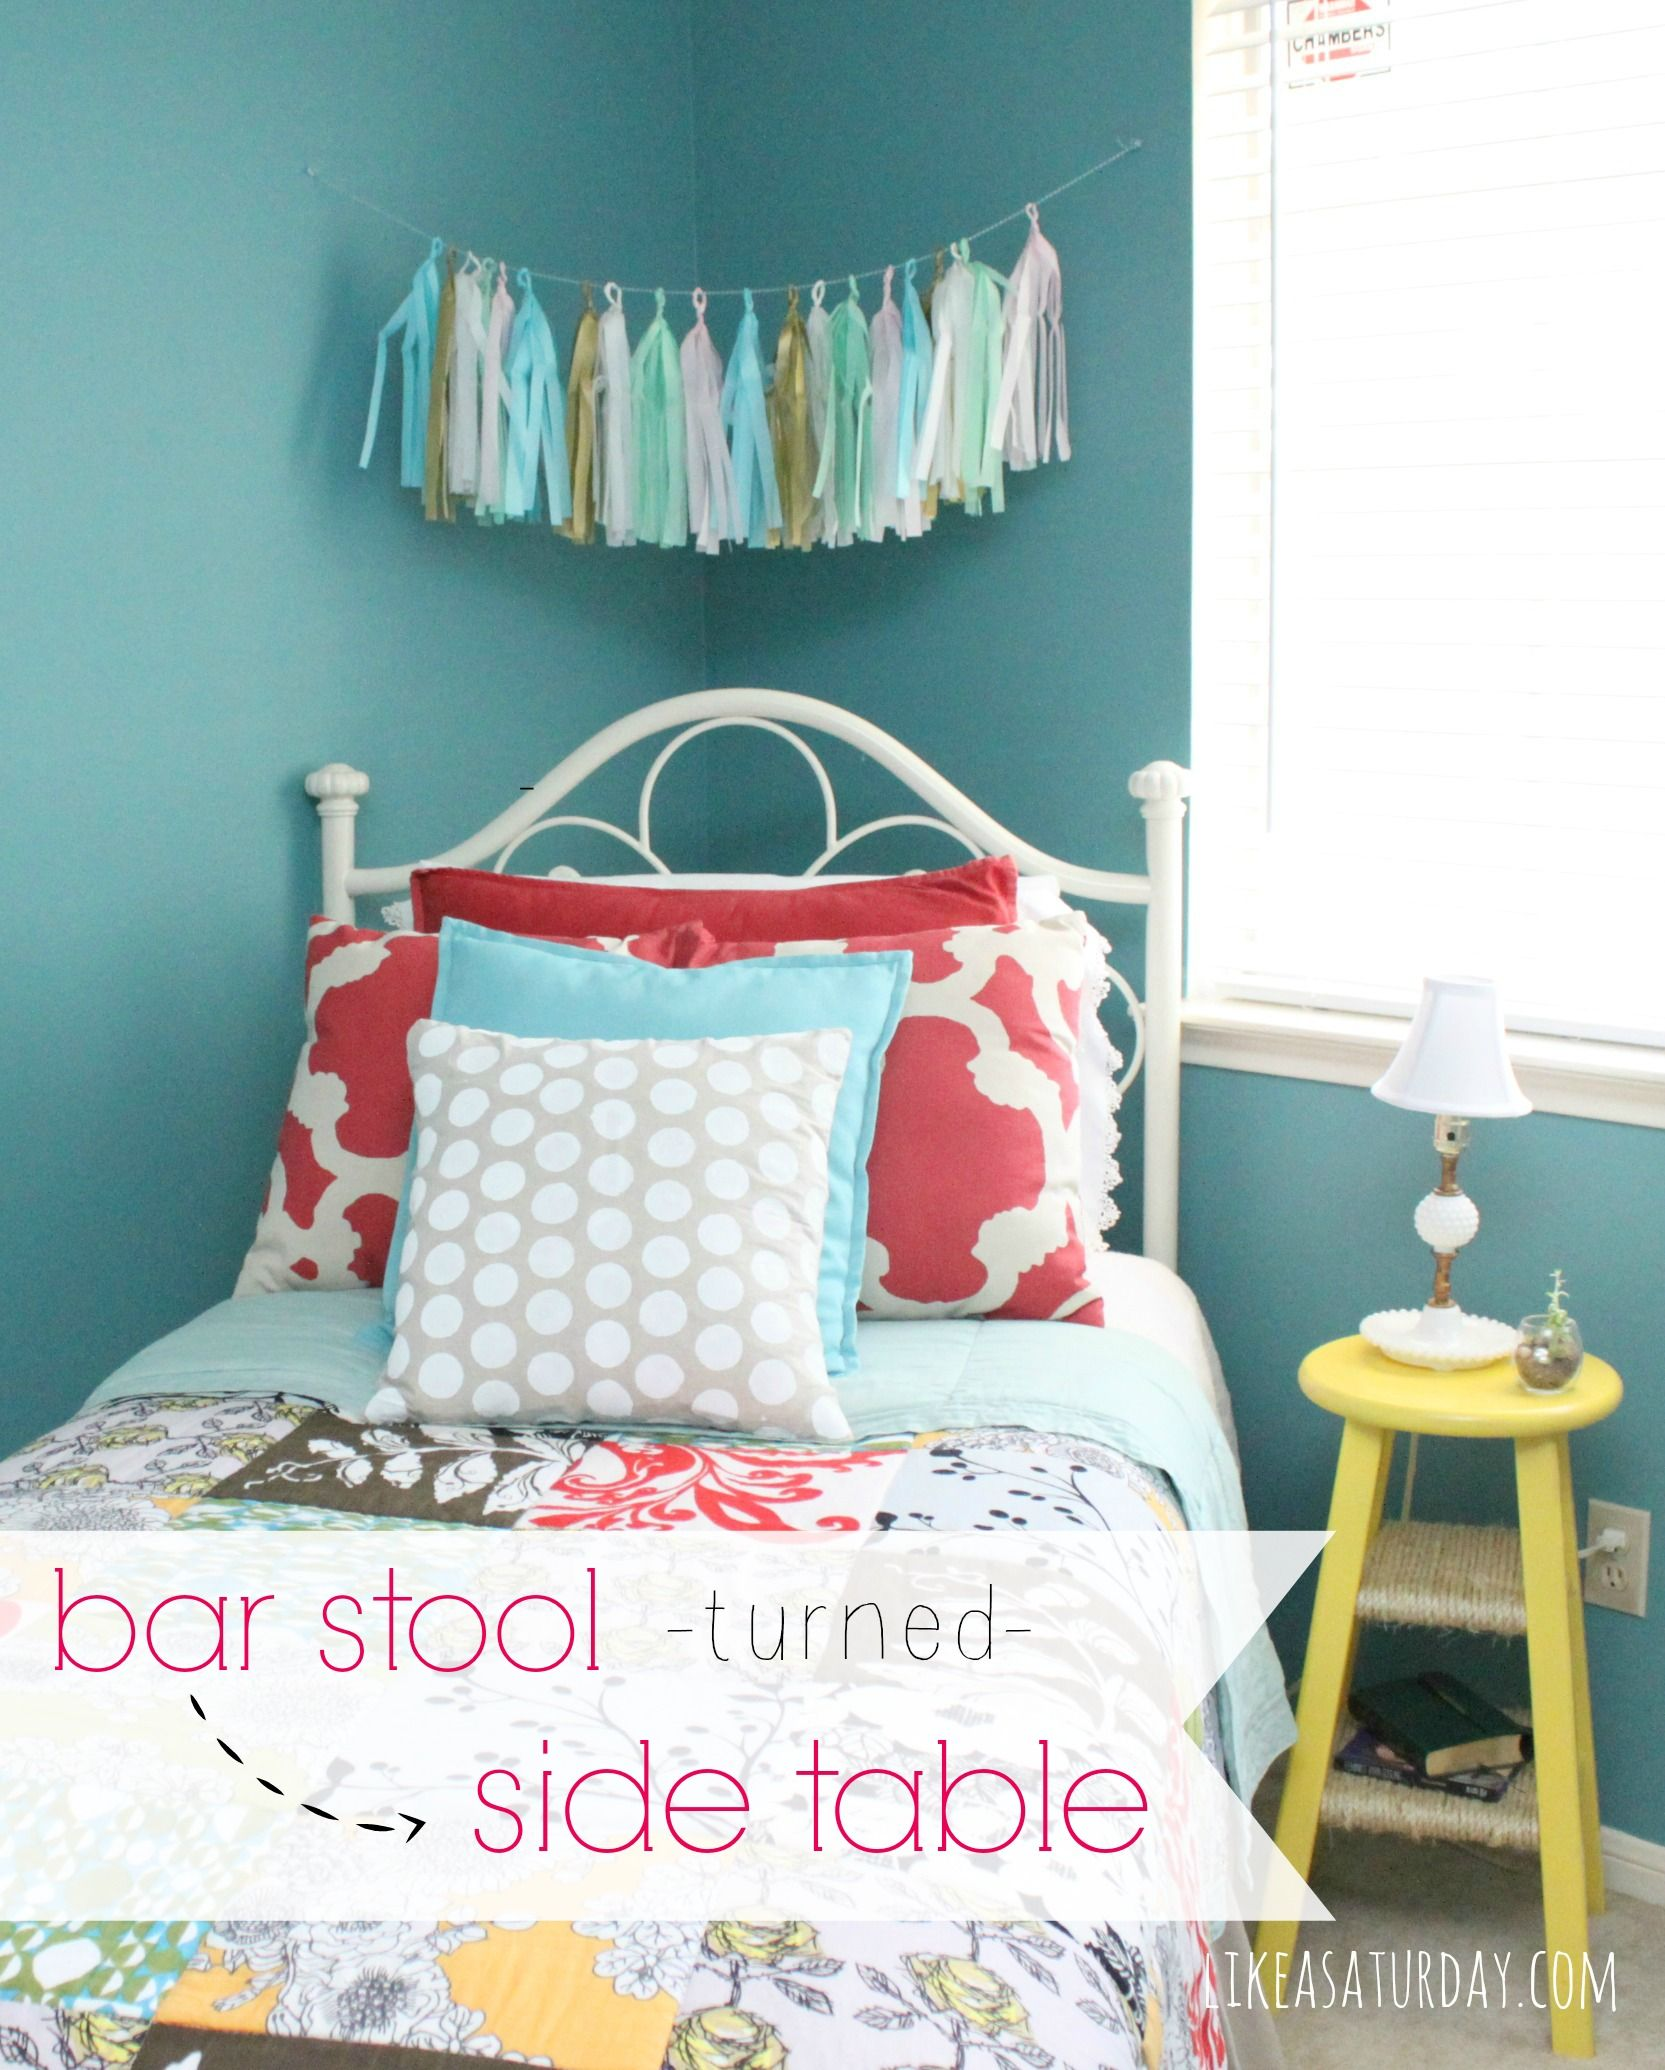 A bar stool turned into a side table for a guest room.